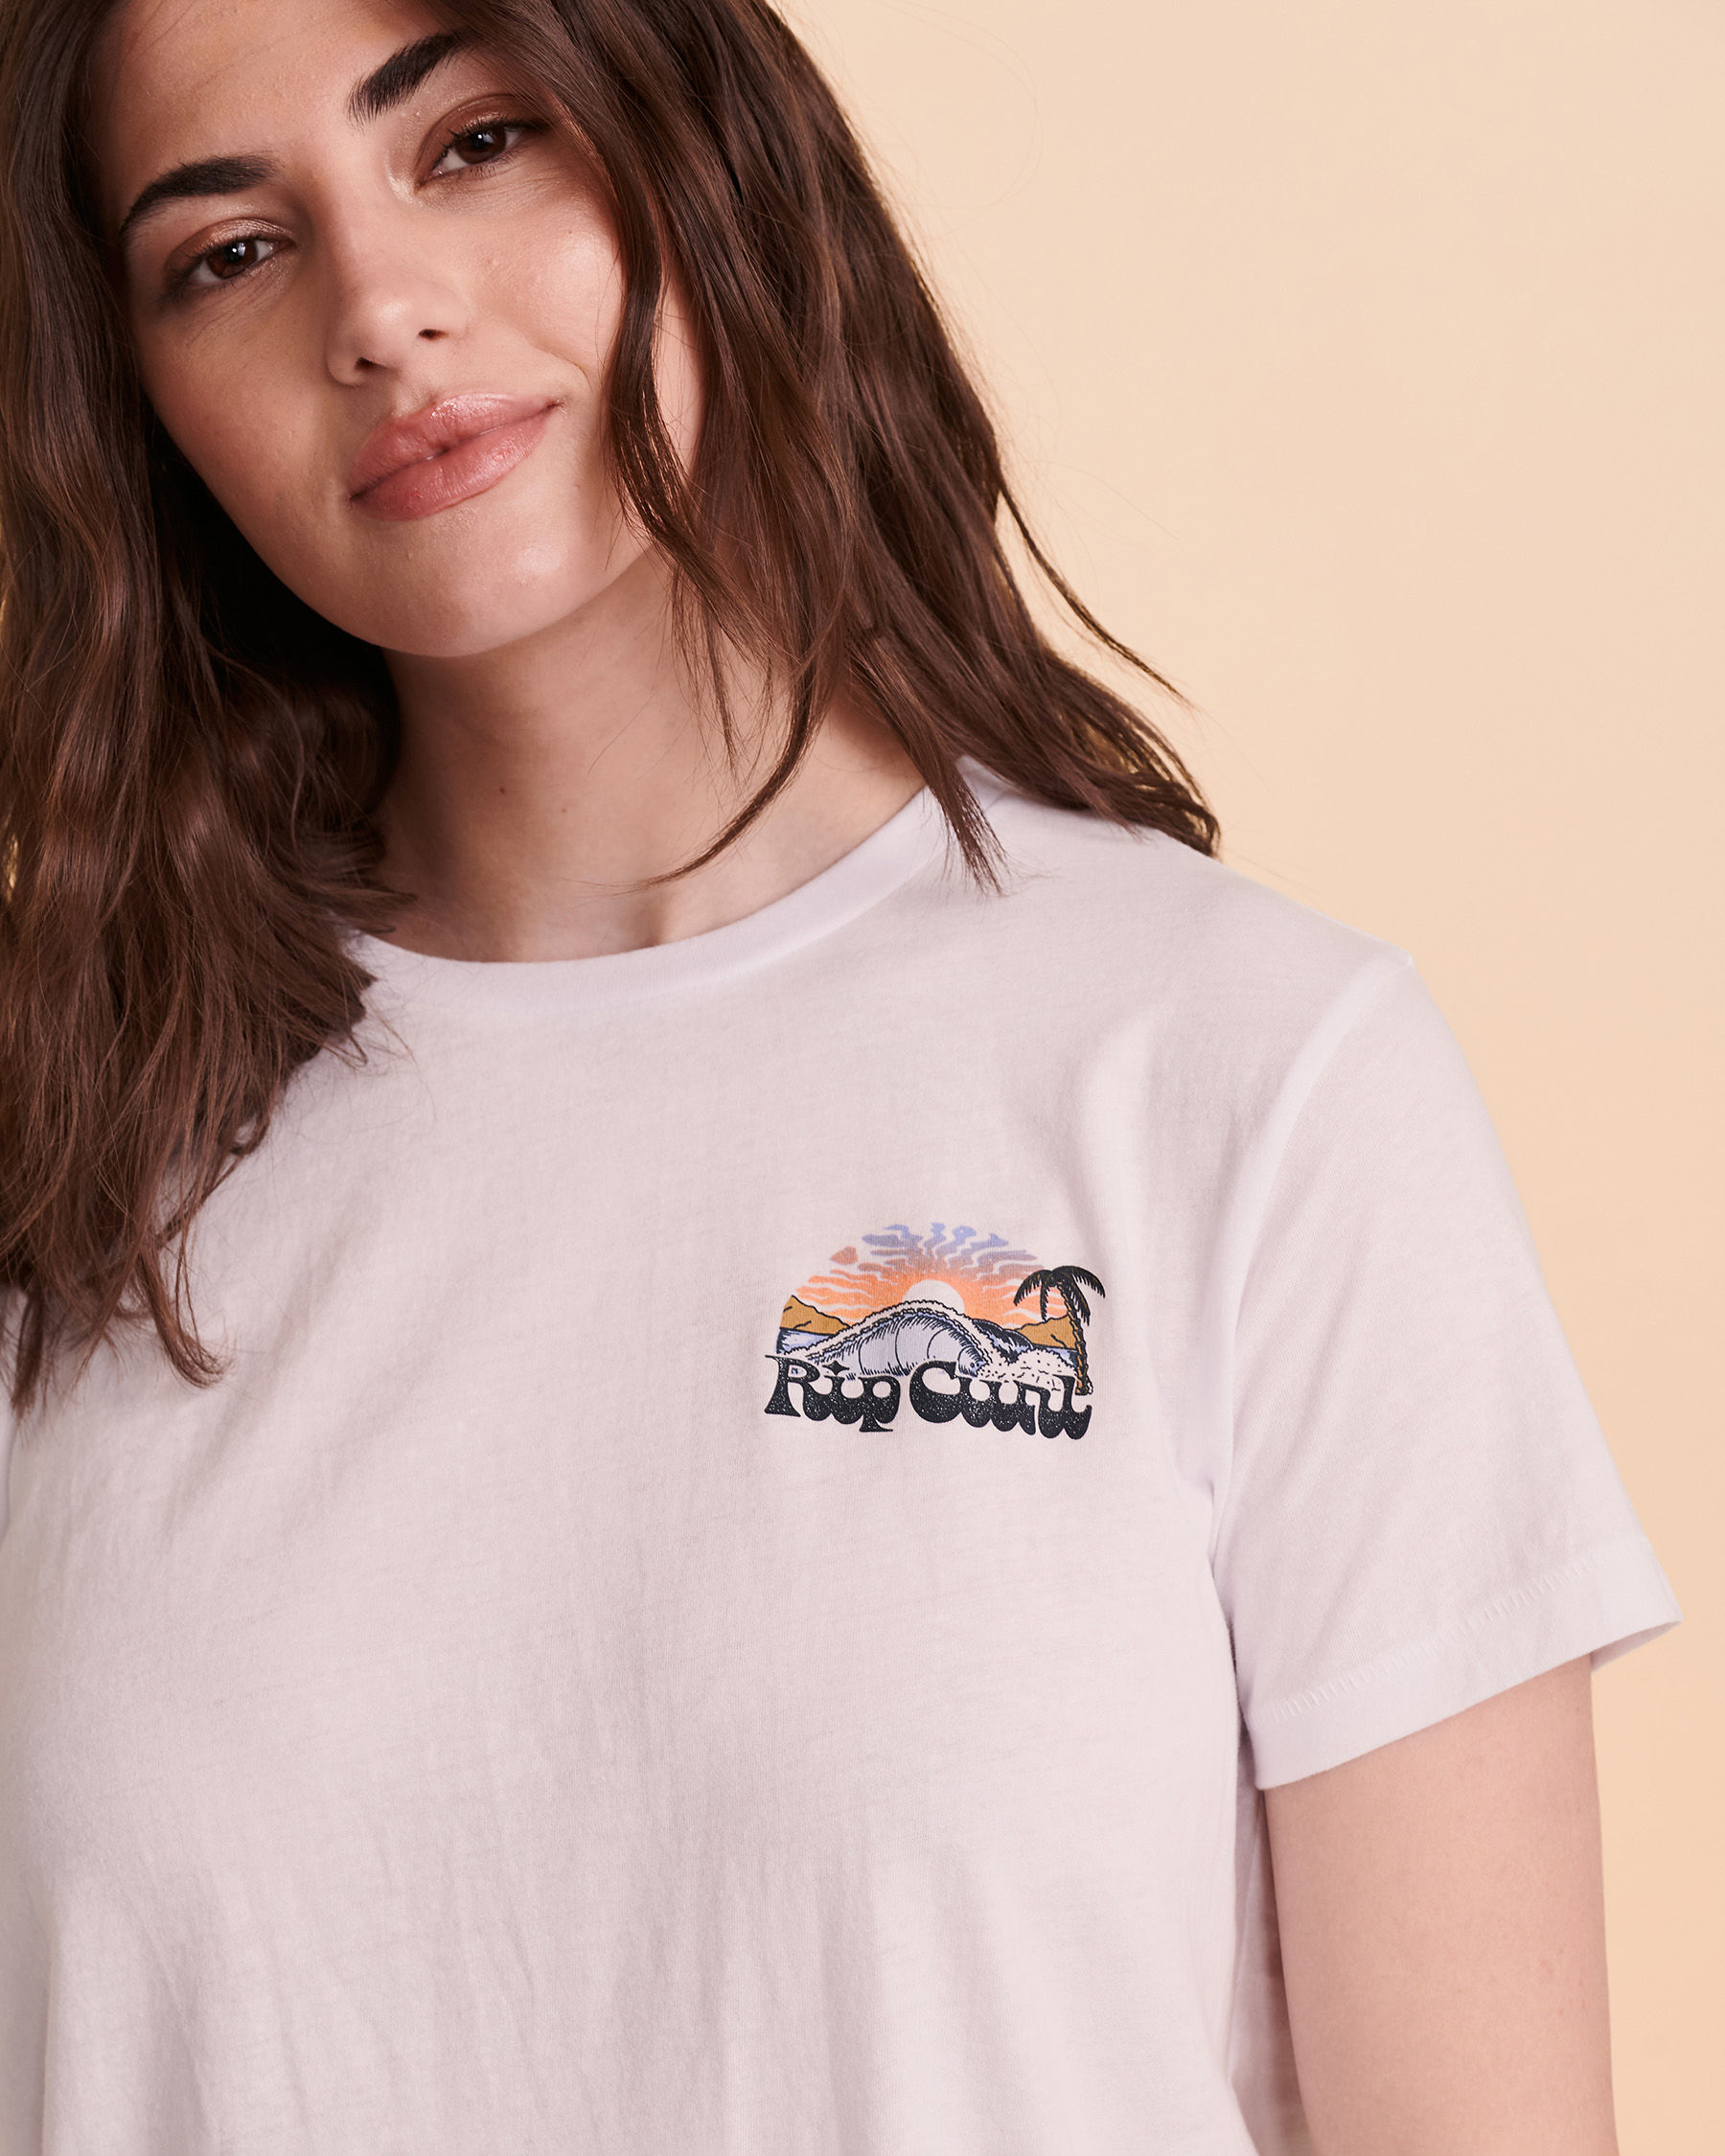 RIP CURL BREAKING WAVE T-shirt White GTEUJ8 - View3